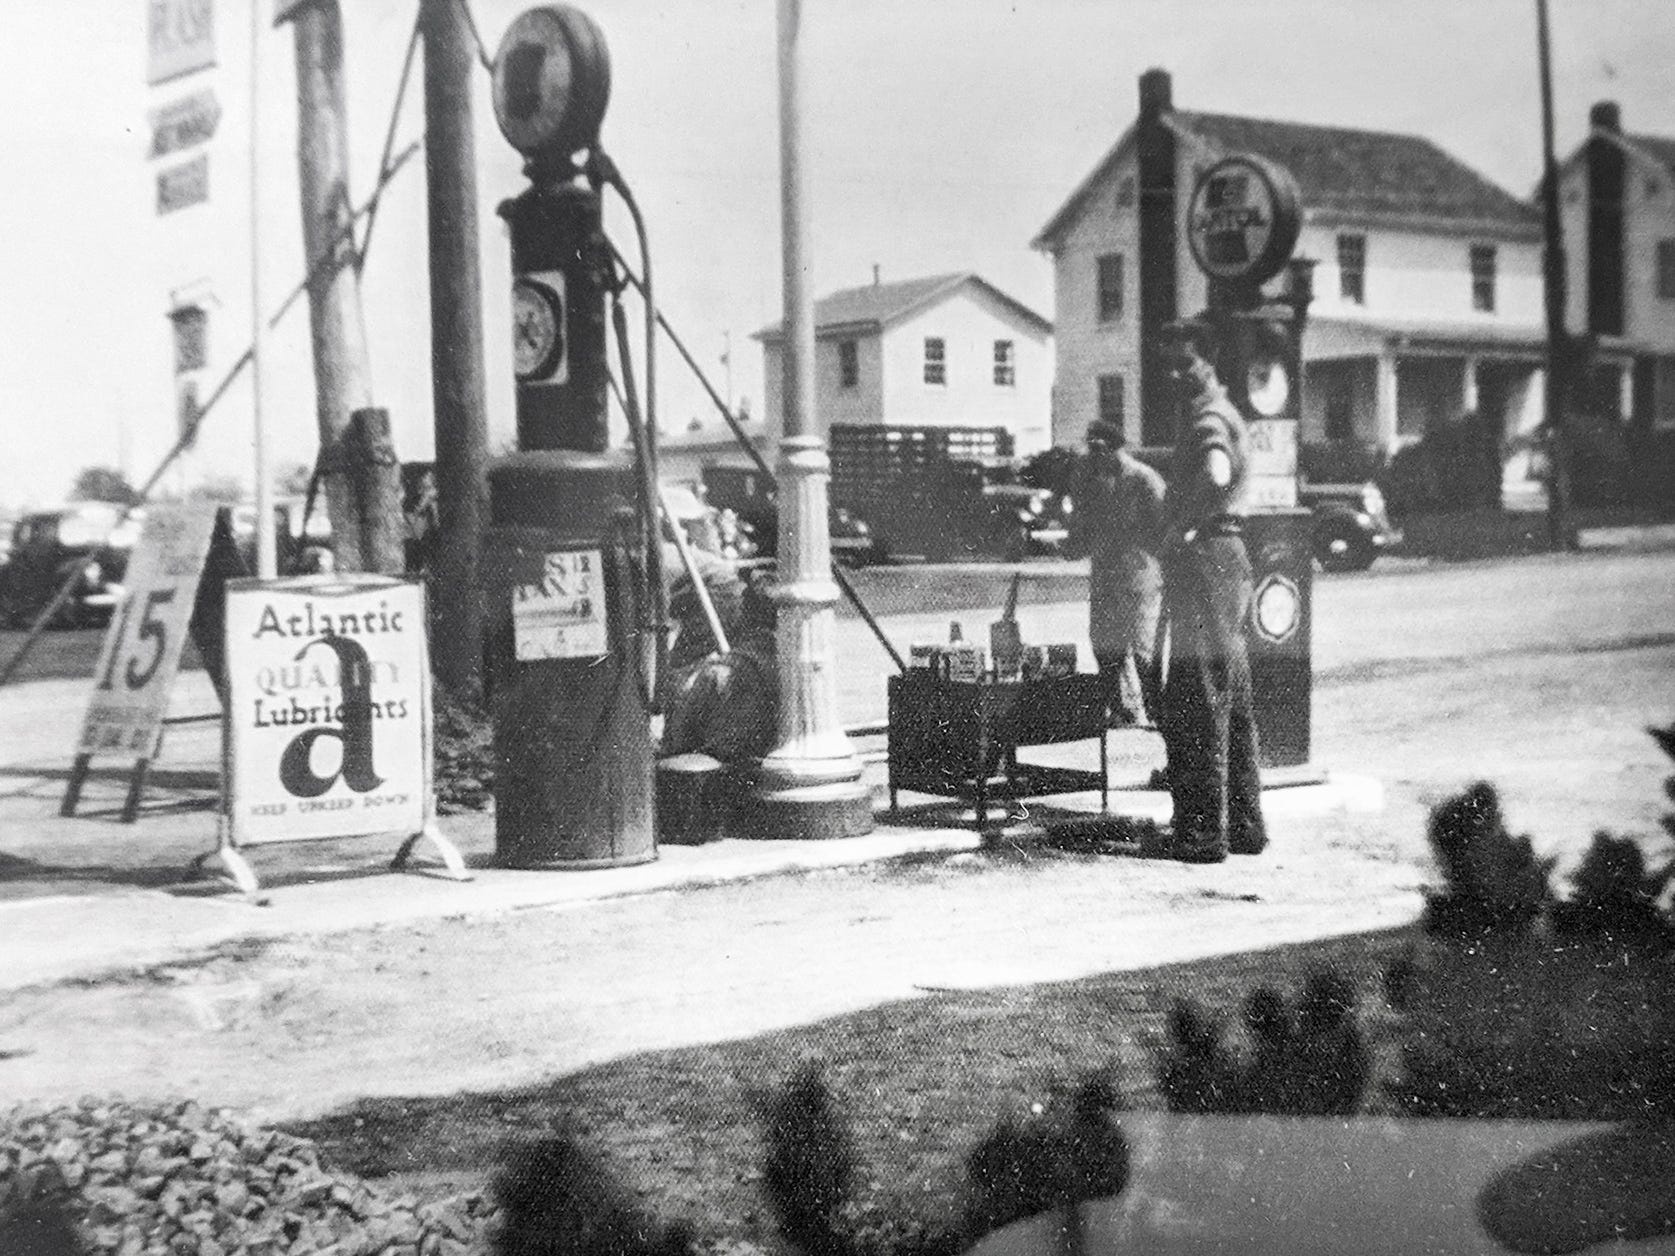 This is a view of gas pumps in front of Smith's store looking across the Susquehanna Trail in Jacobus as they looked in 1937 in the area of the current Smith Village parking lot.